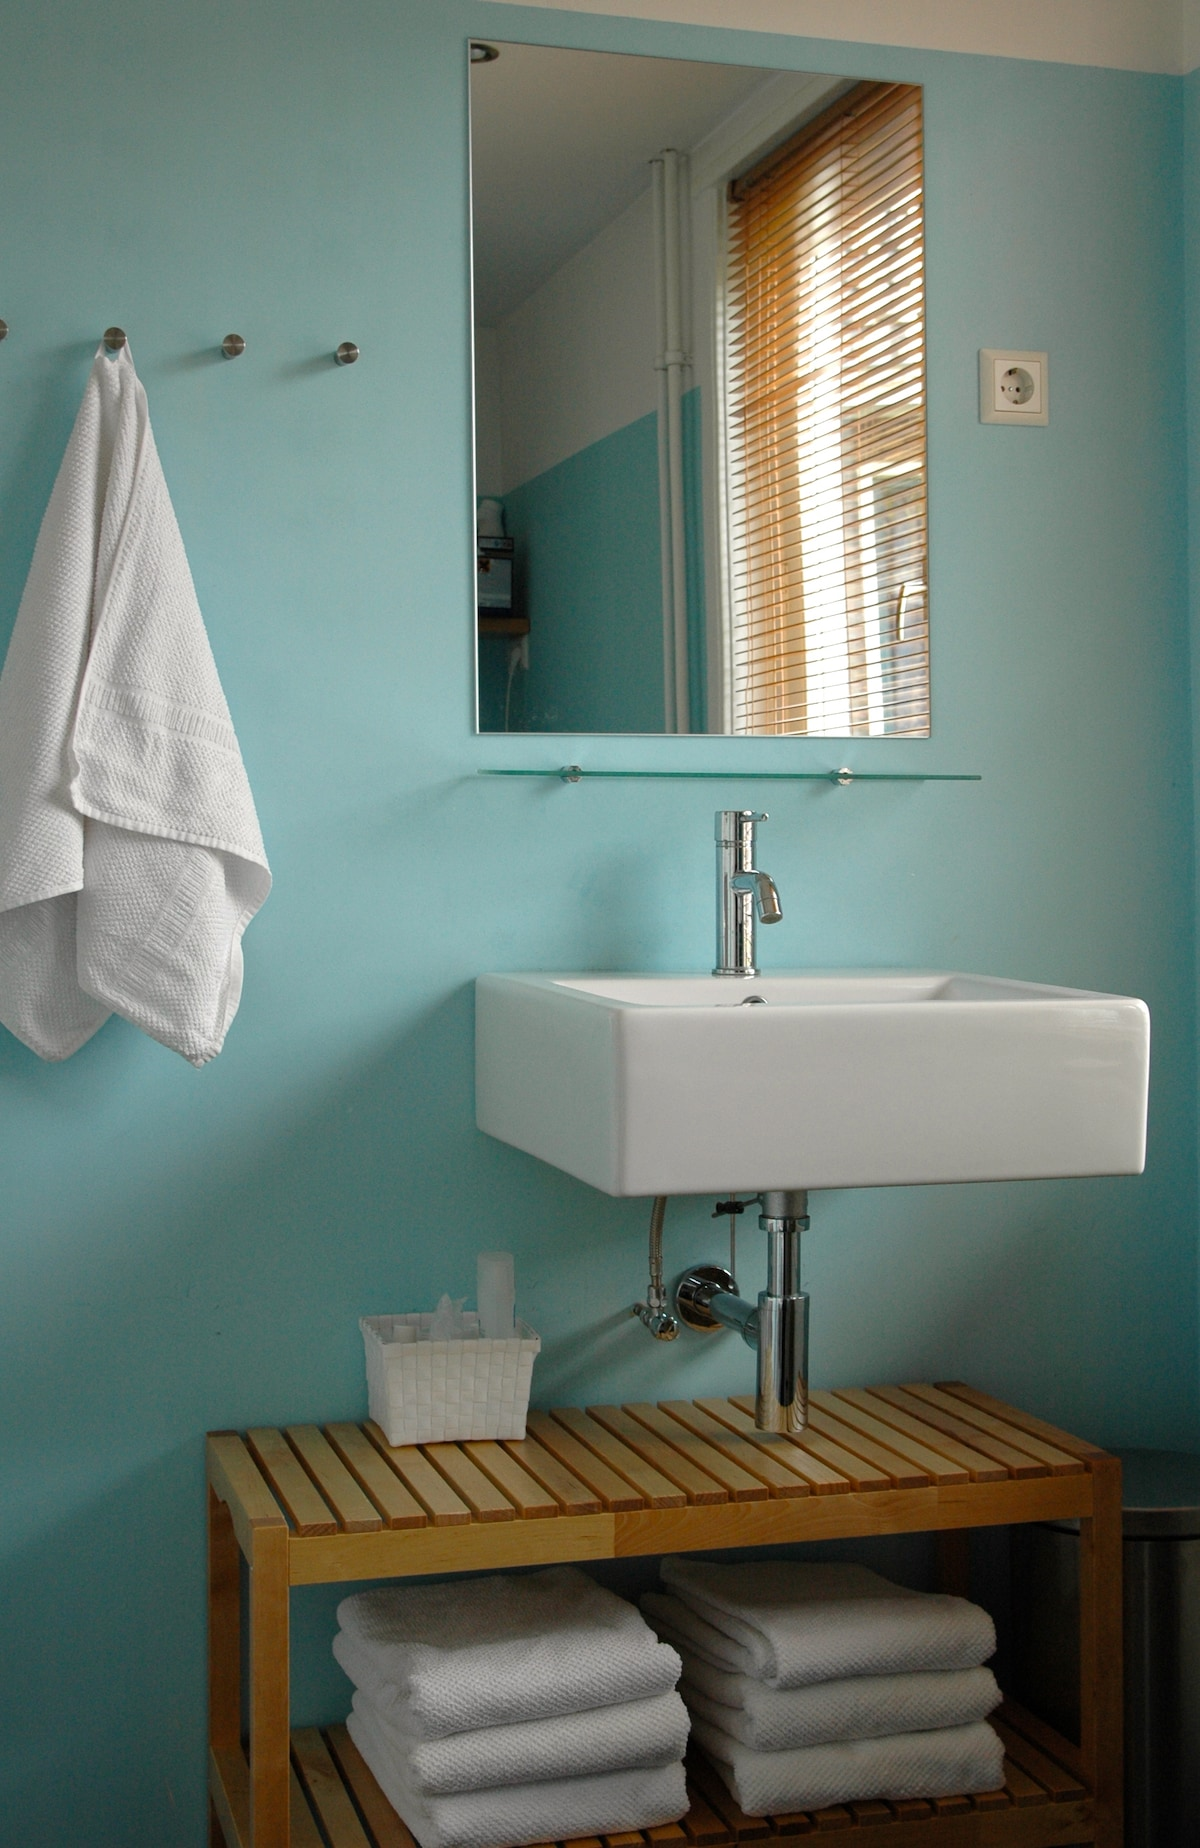 Sparkling clean private bathroom with fresh towels,